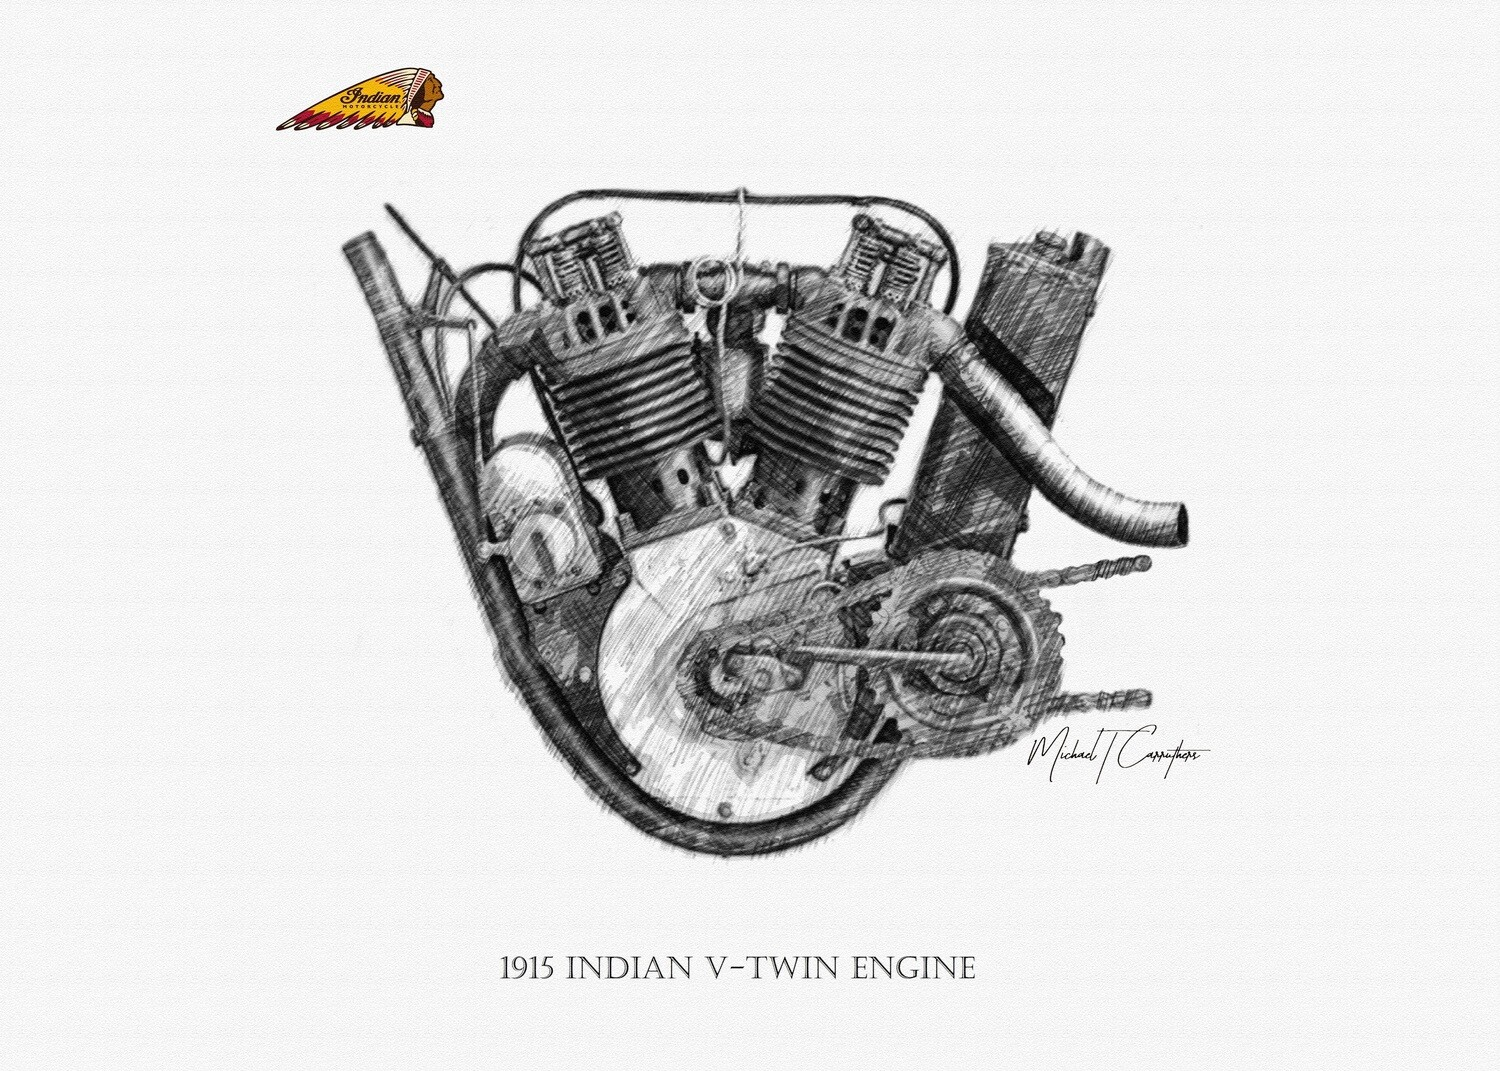 1915 Indian Engine Poster